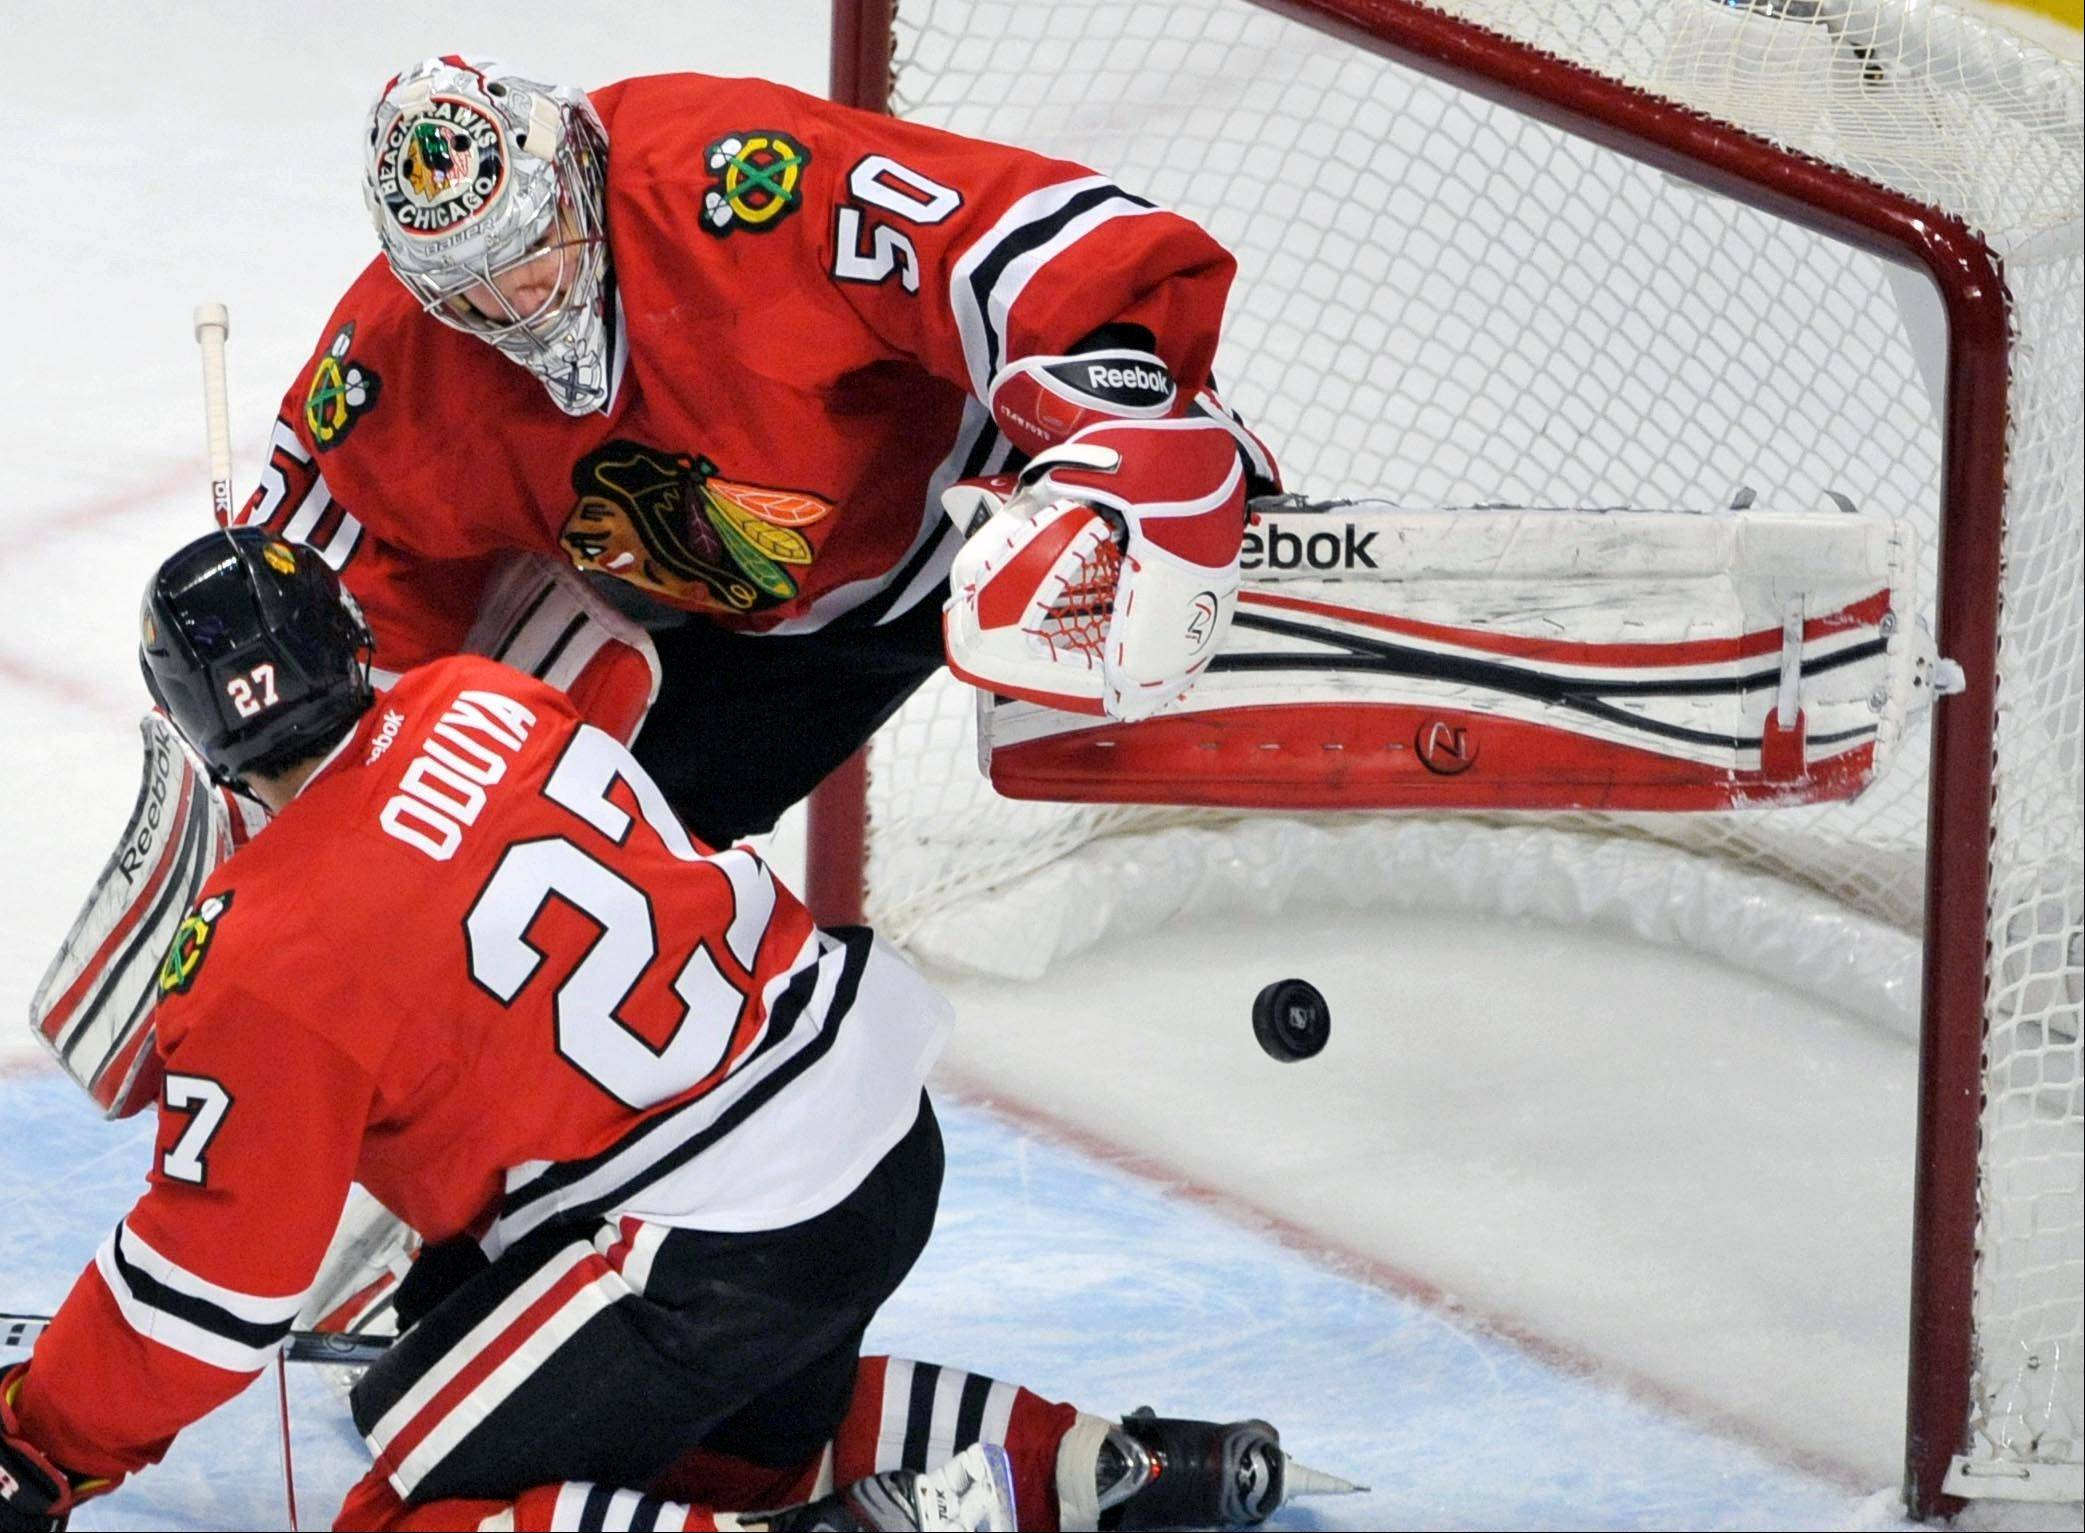 Corey Crawford makes a save against the St. Louis Blues while Blackhawks teammate Johnny Oduya looks on during the first period of an NHL hockey game in Chicago, Thursday, April 4, 2013.